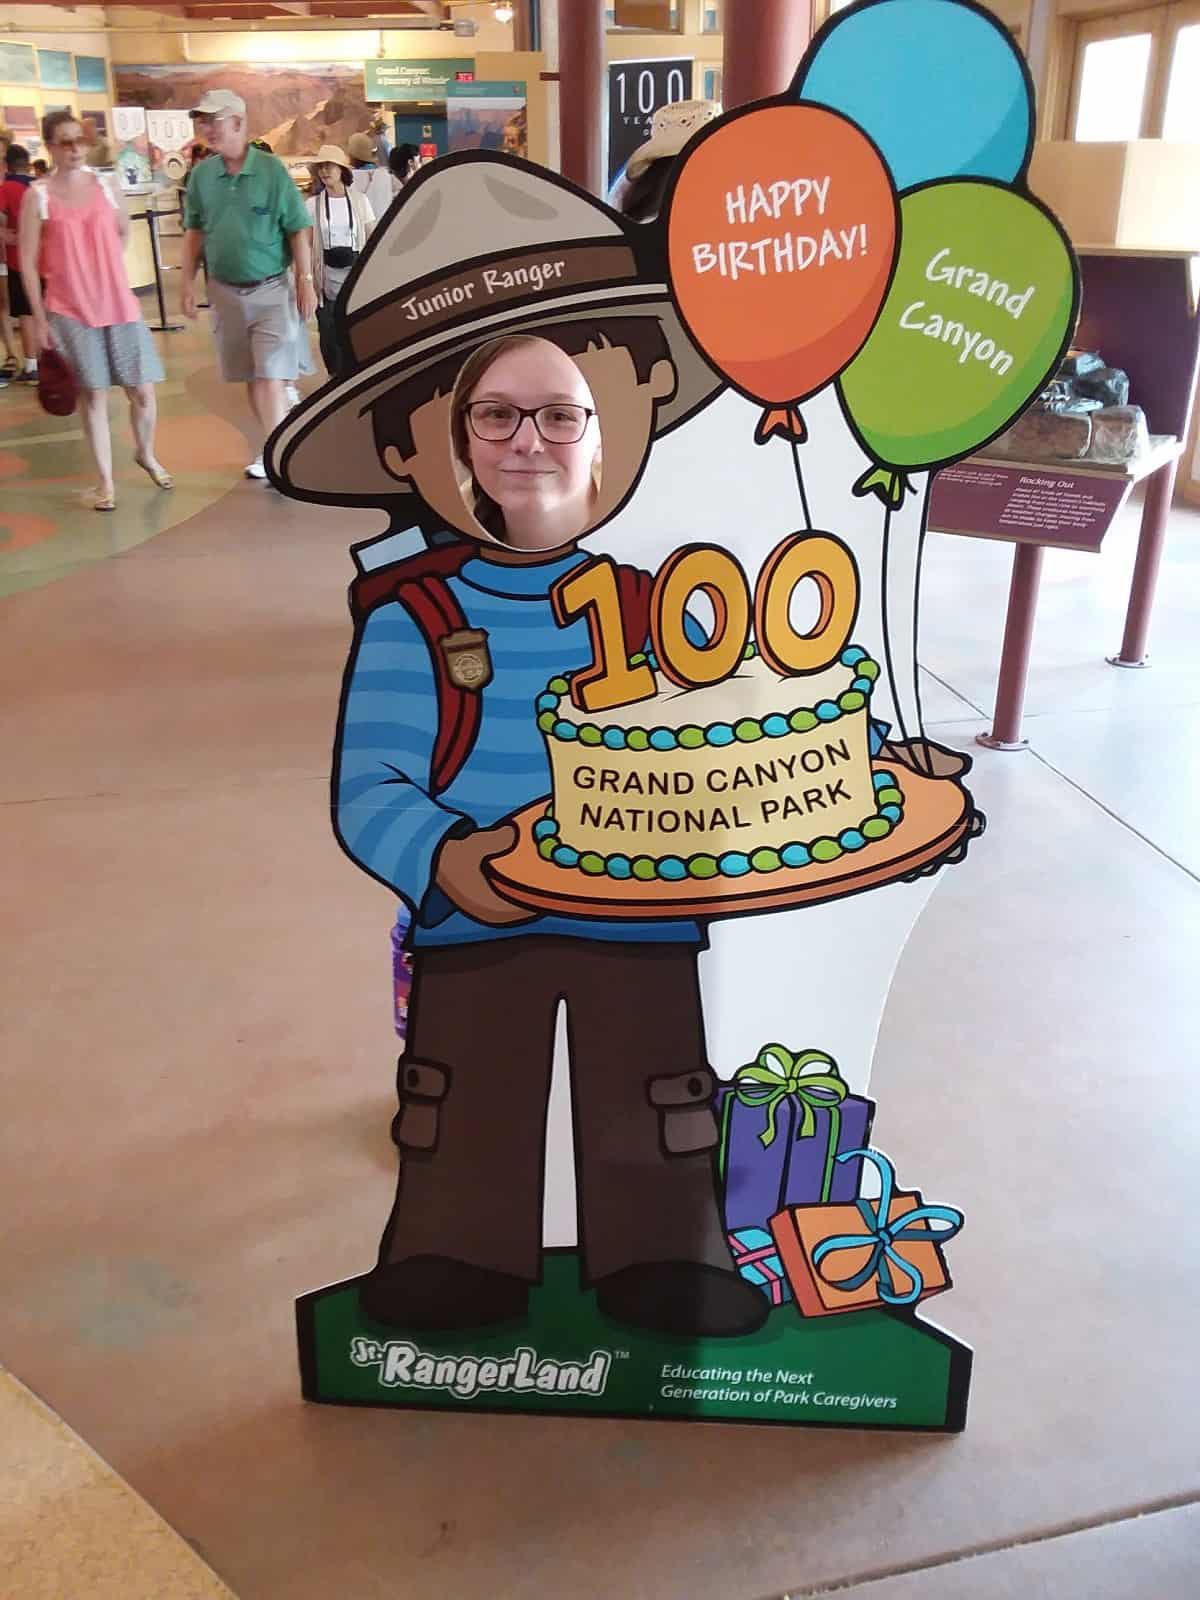 Grand Canyon 100th Birthday Cut Out